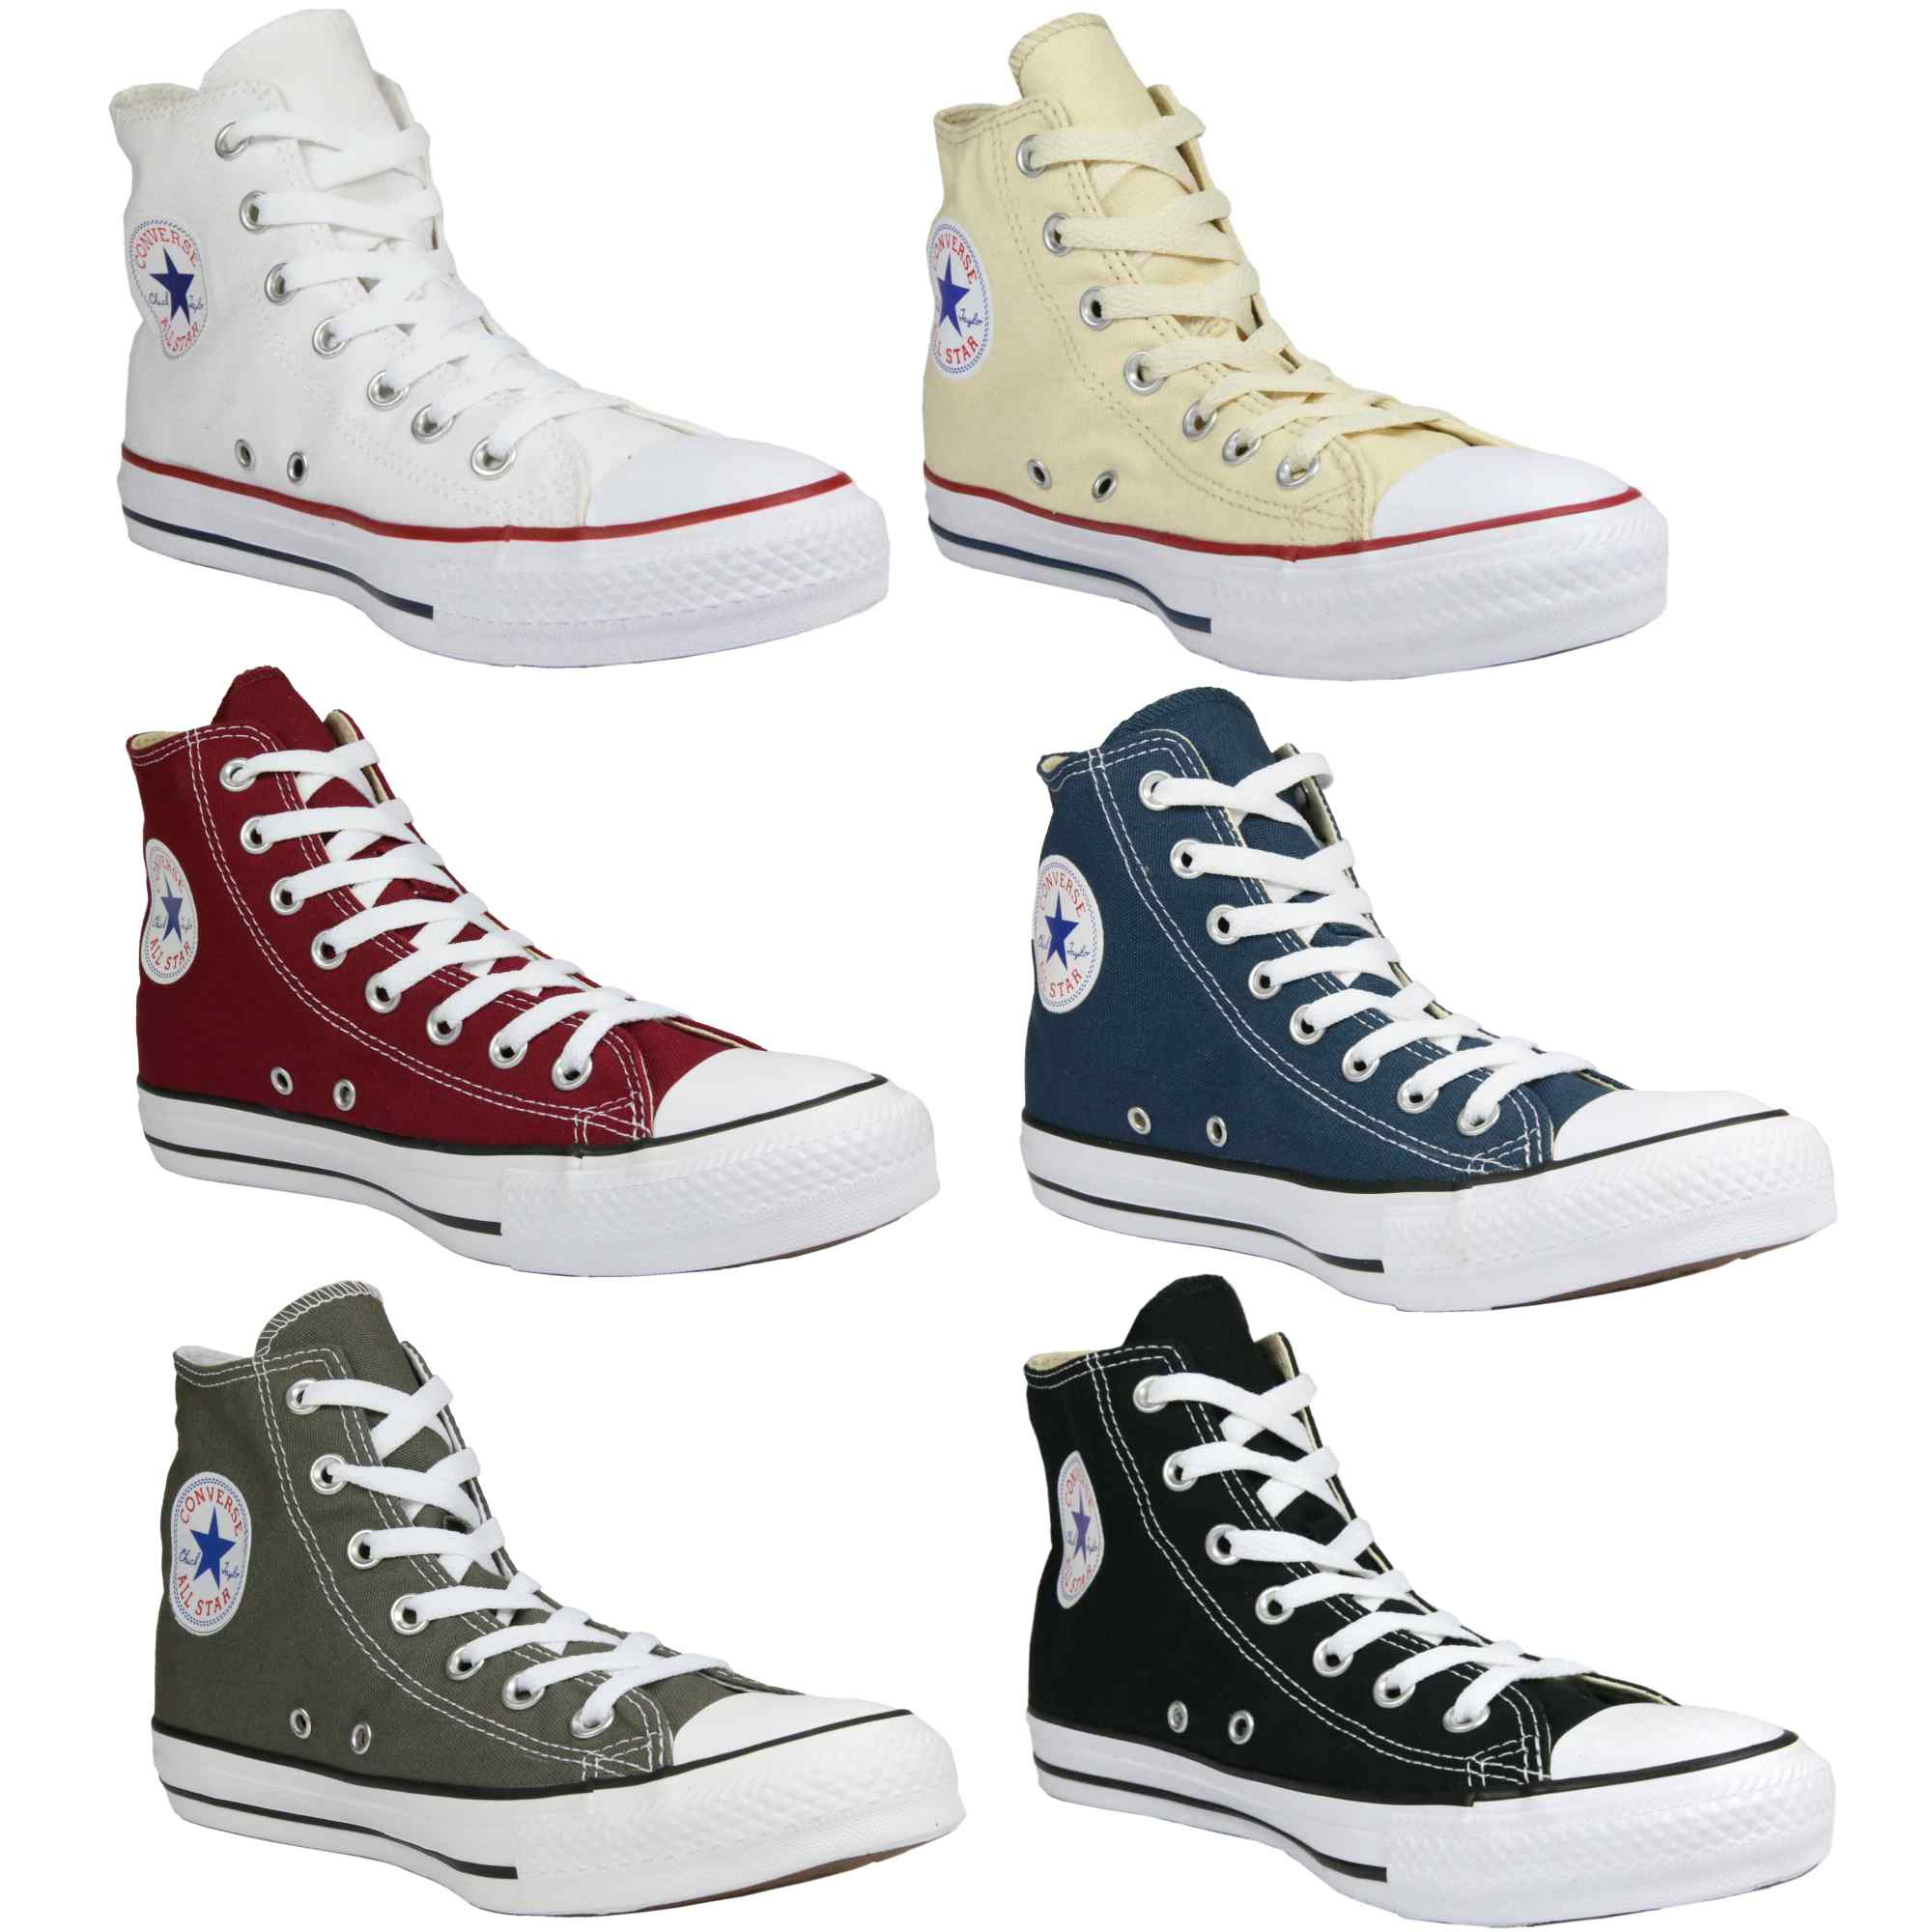 new arrival 317b1 fa359 coupon code for schwarz high top herren converse 72bda a9587